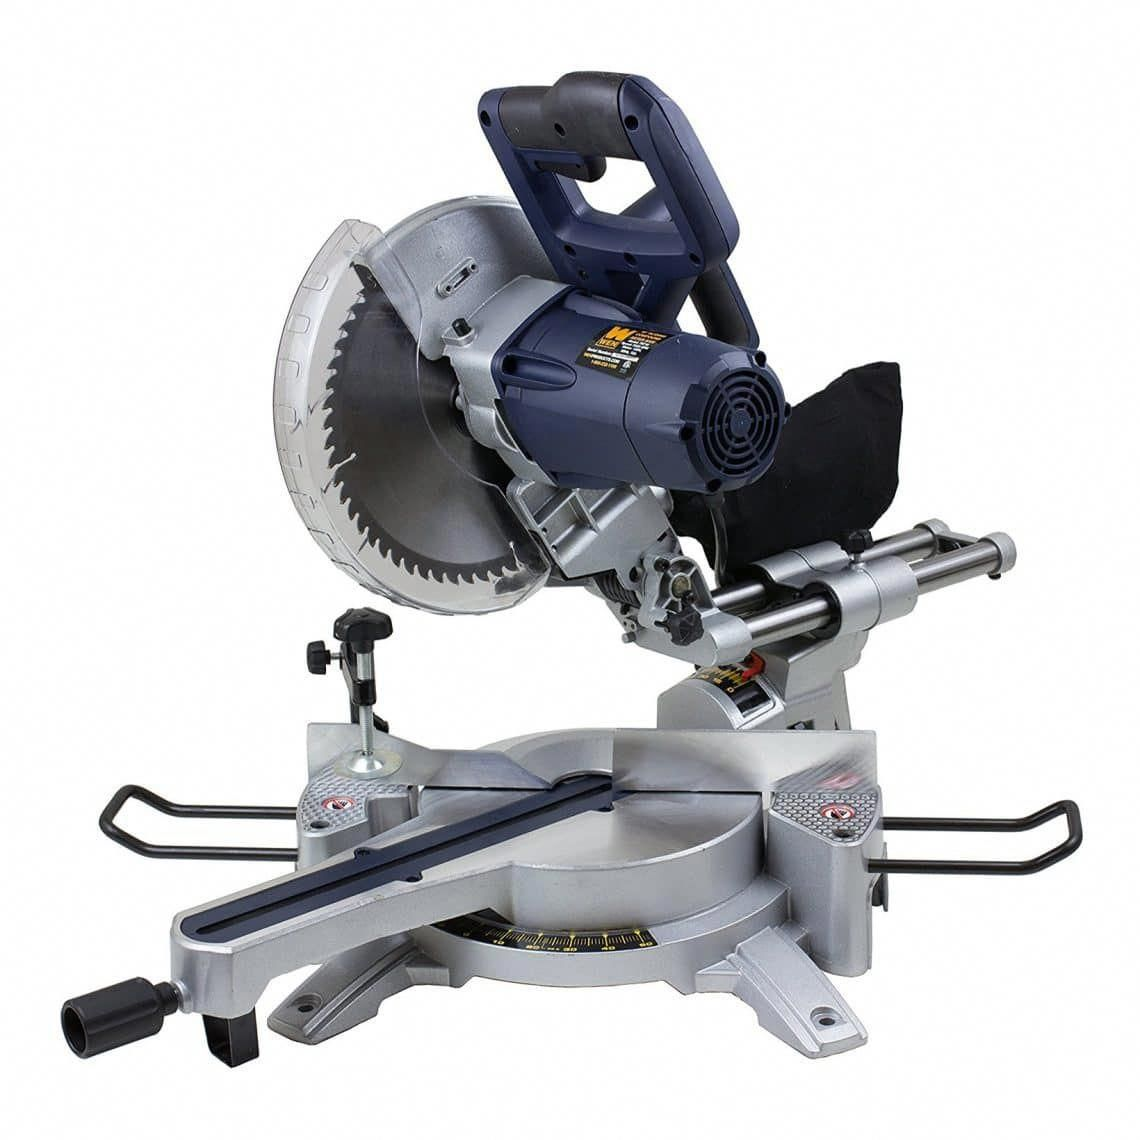 Setting Up Shop Hand Power Tools Sliding Compound Miter Saw Compound Mitre Saw Miter Saws